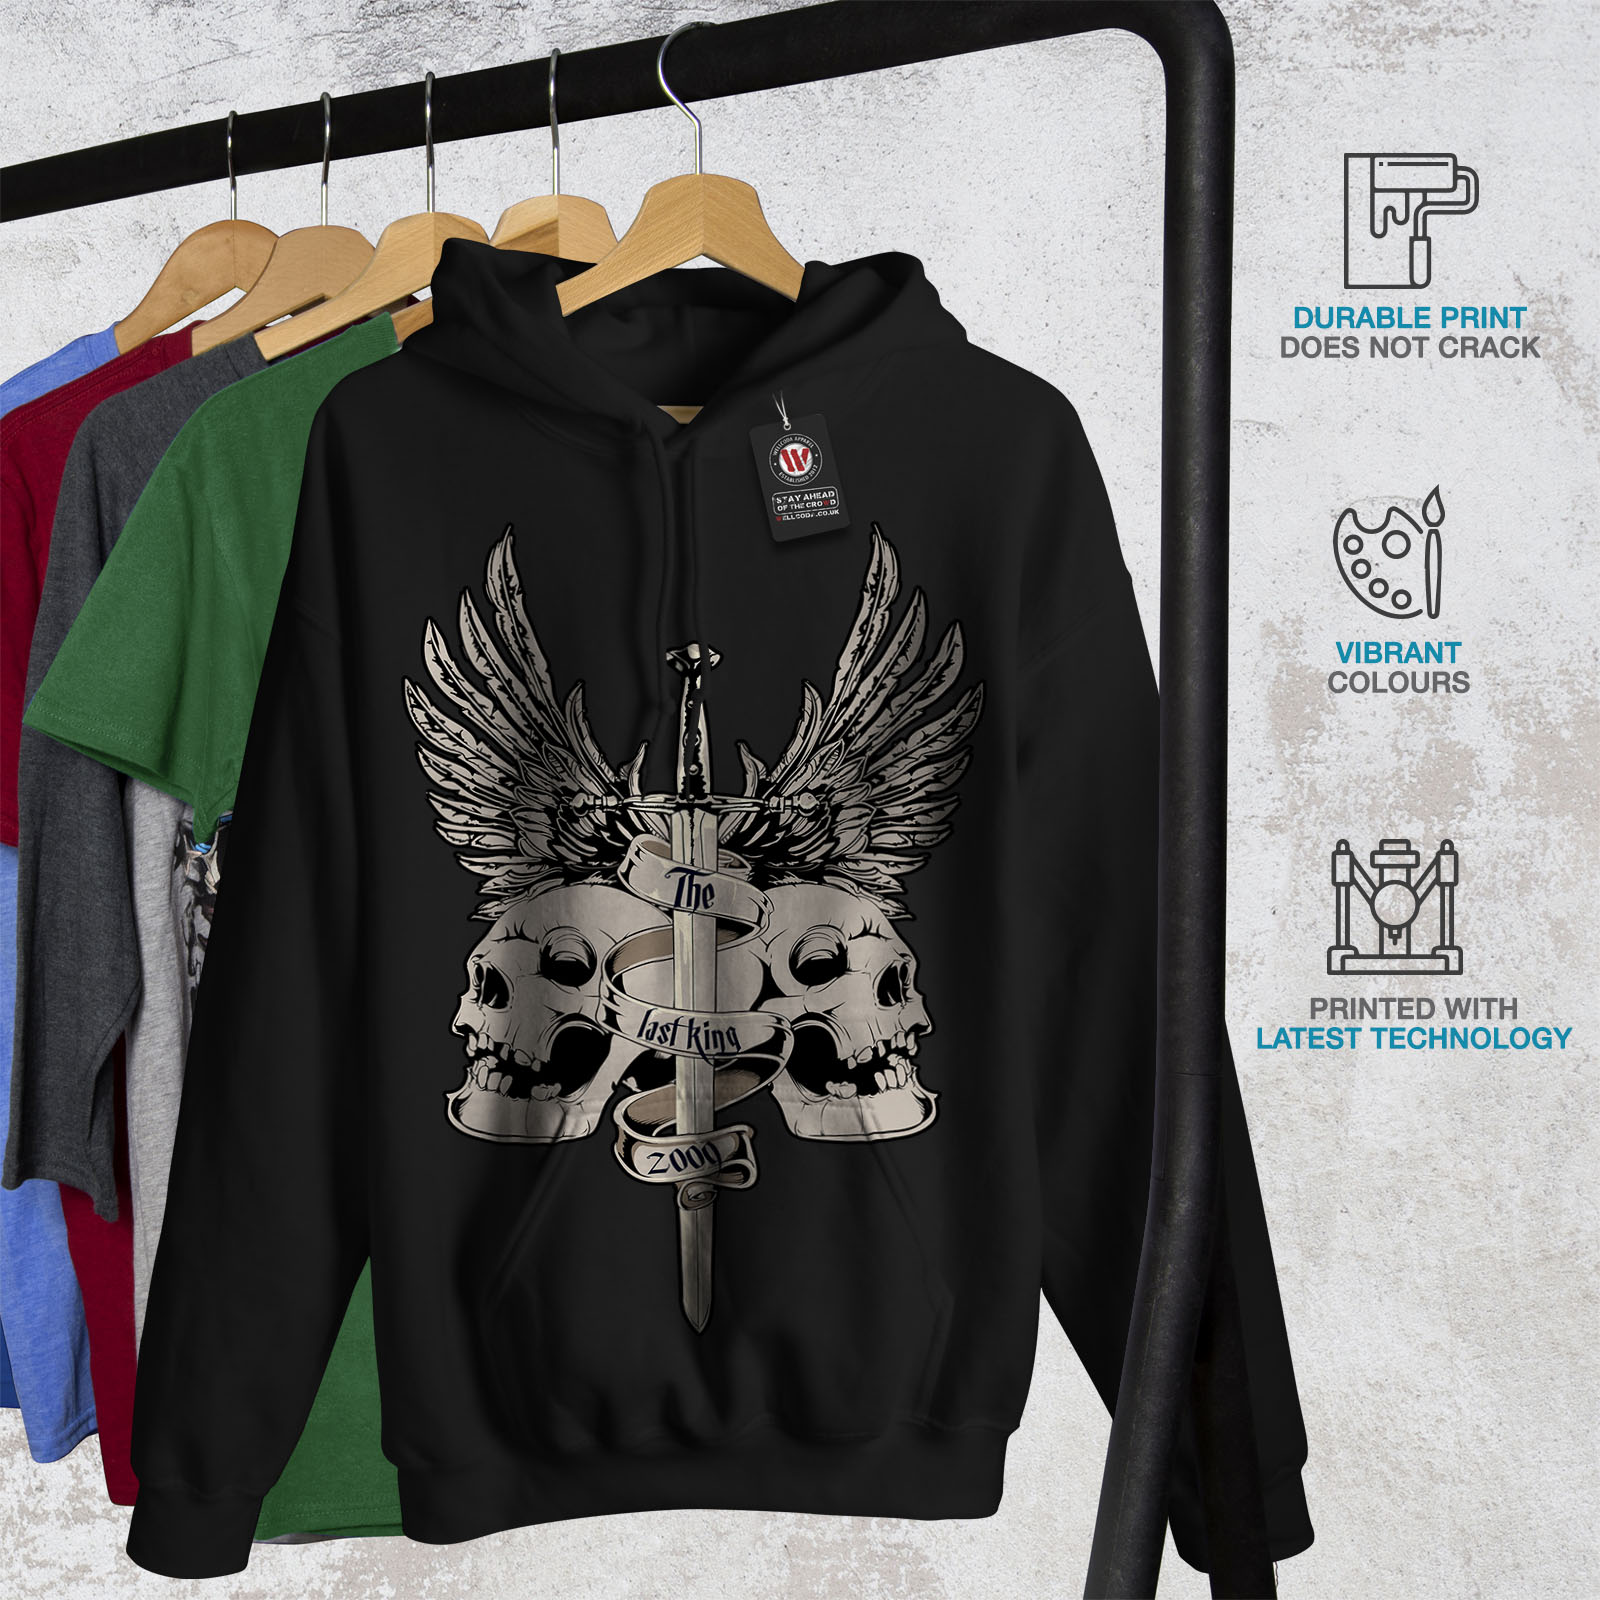 miniature 7 - Wellcoda The Last King Death Mens Hoodie, Skull Casual Hooded Sweatshirt